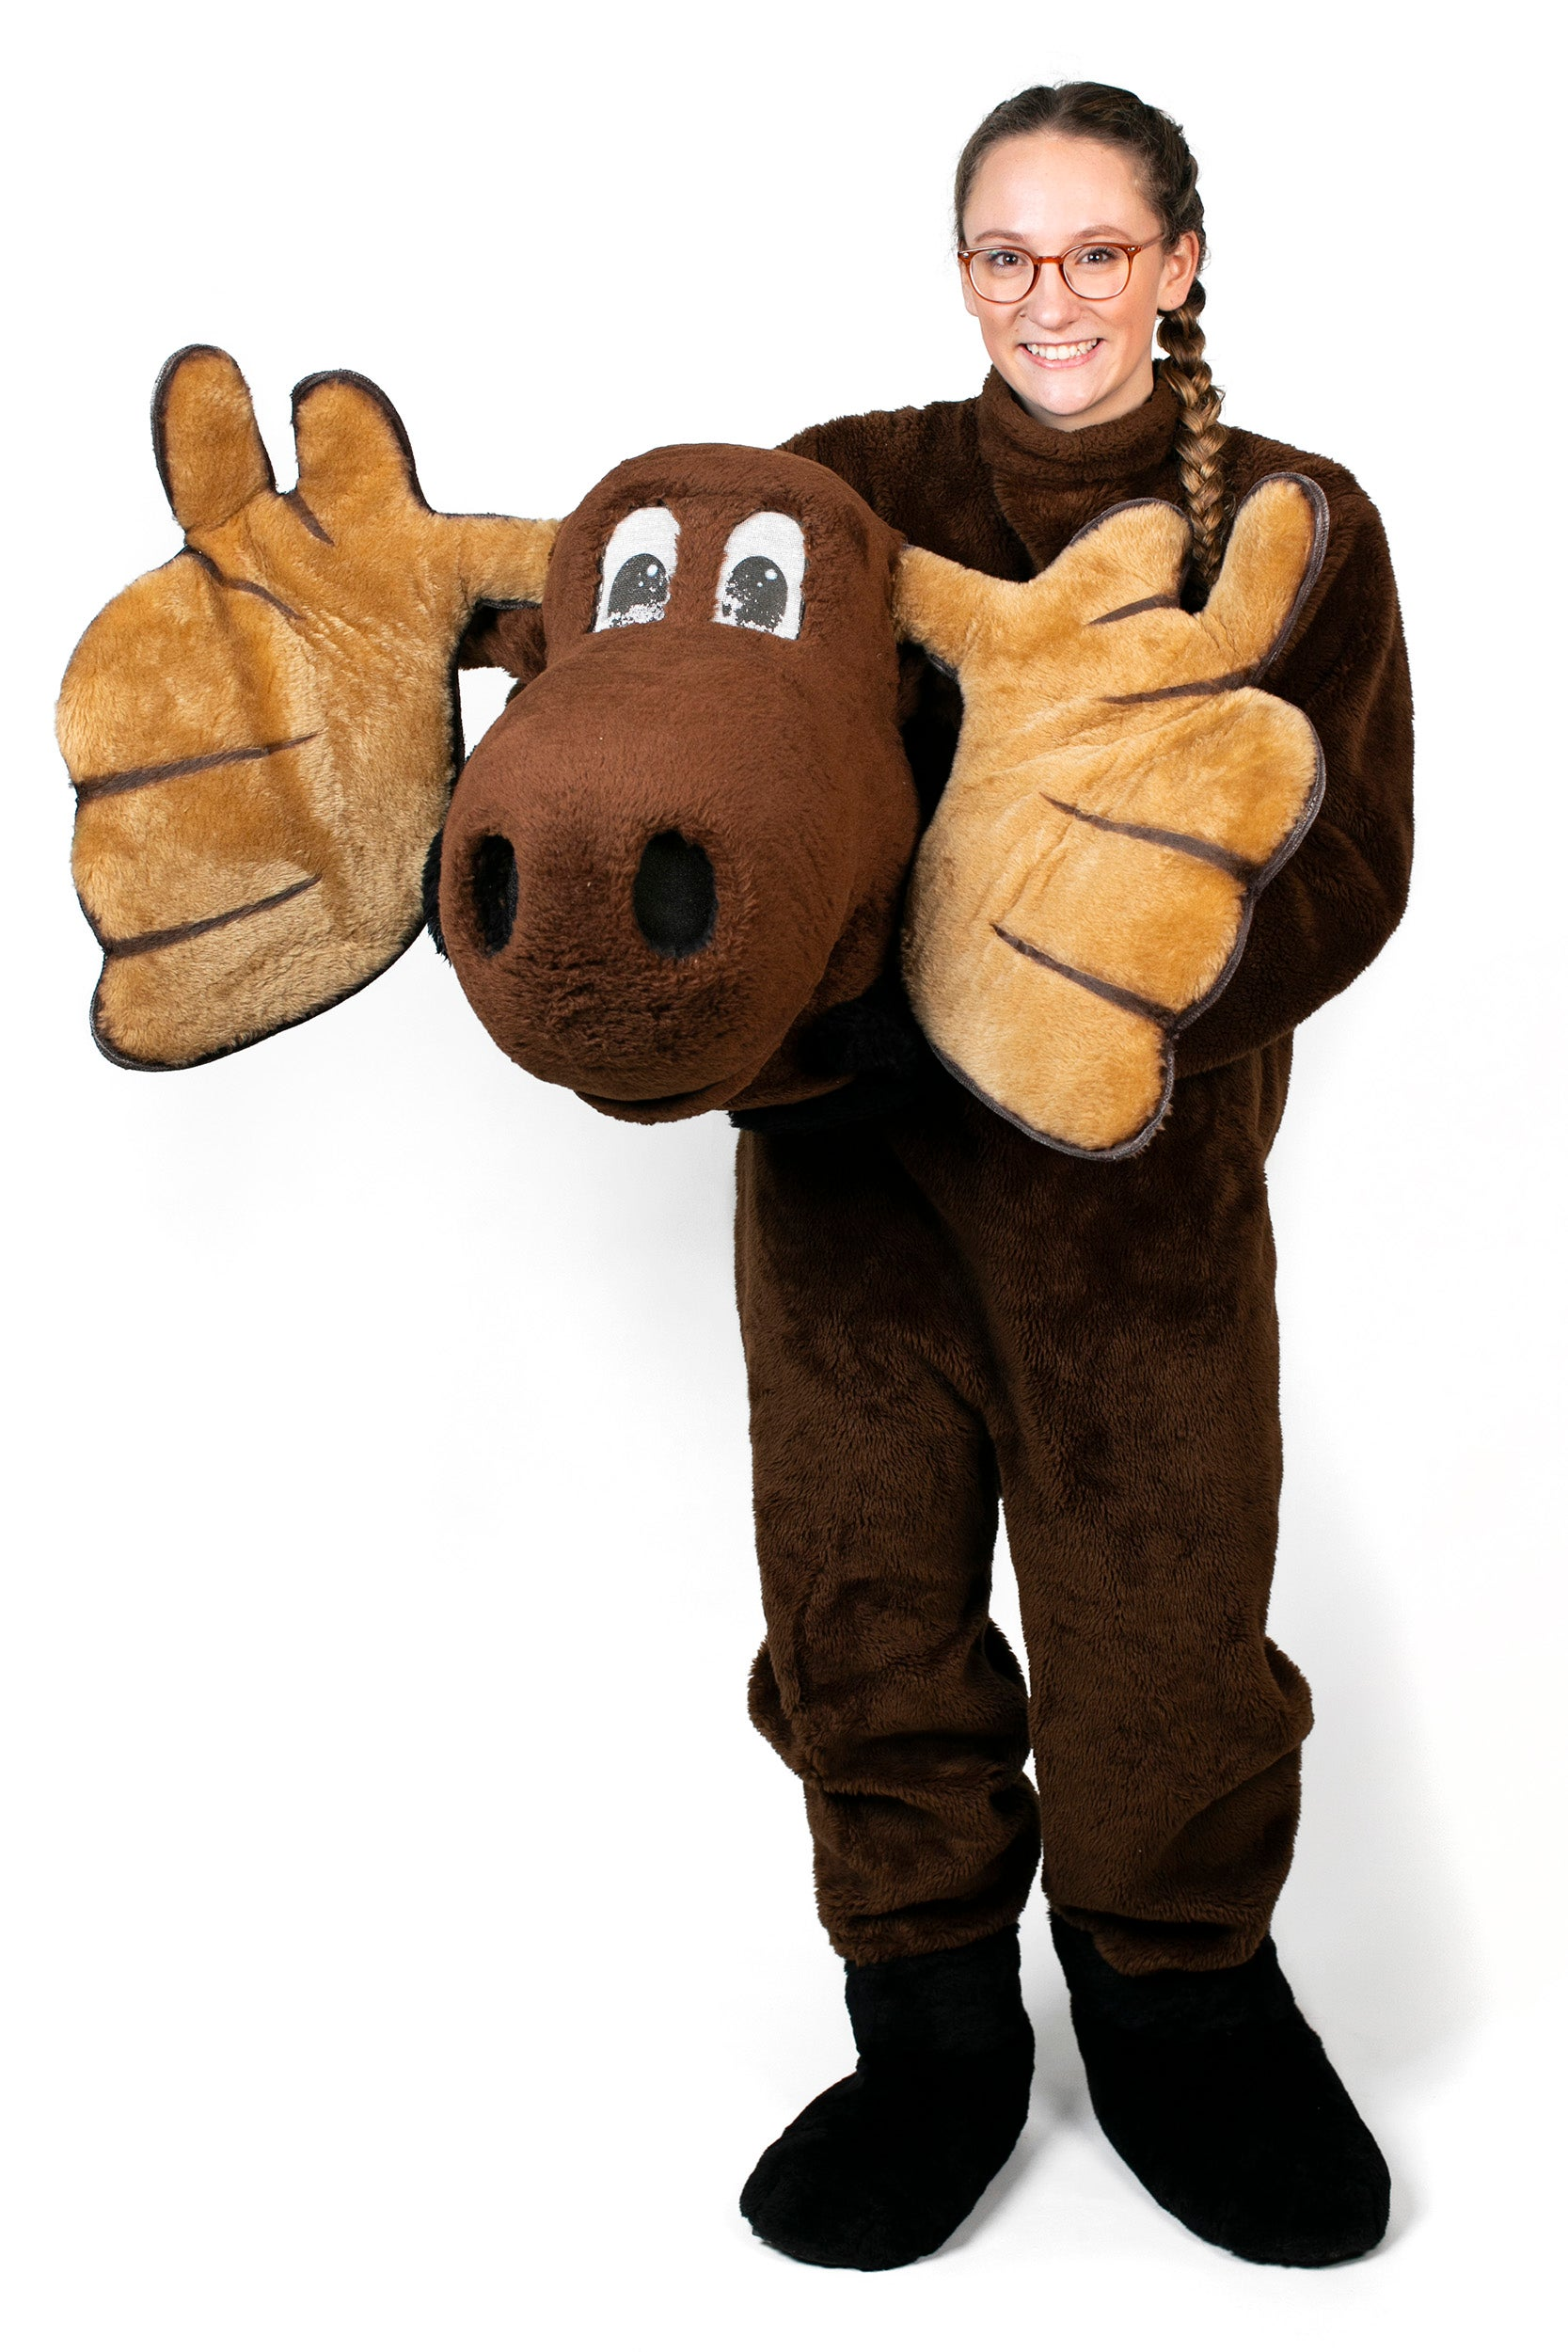 Bella Beckett (dresses as the Moose Mascot for Dunster House.